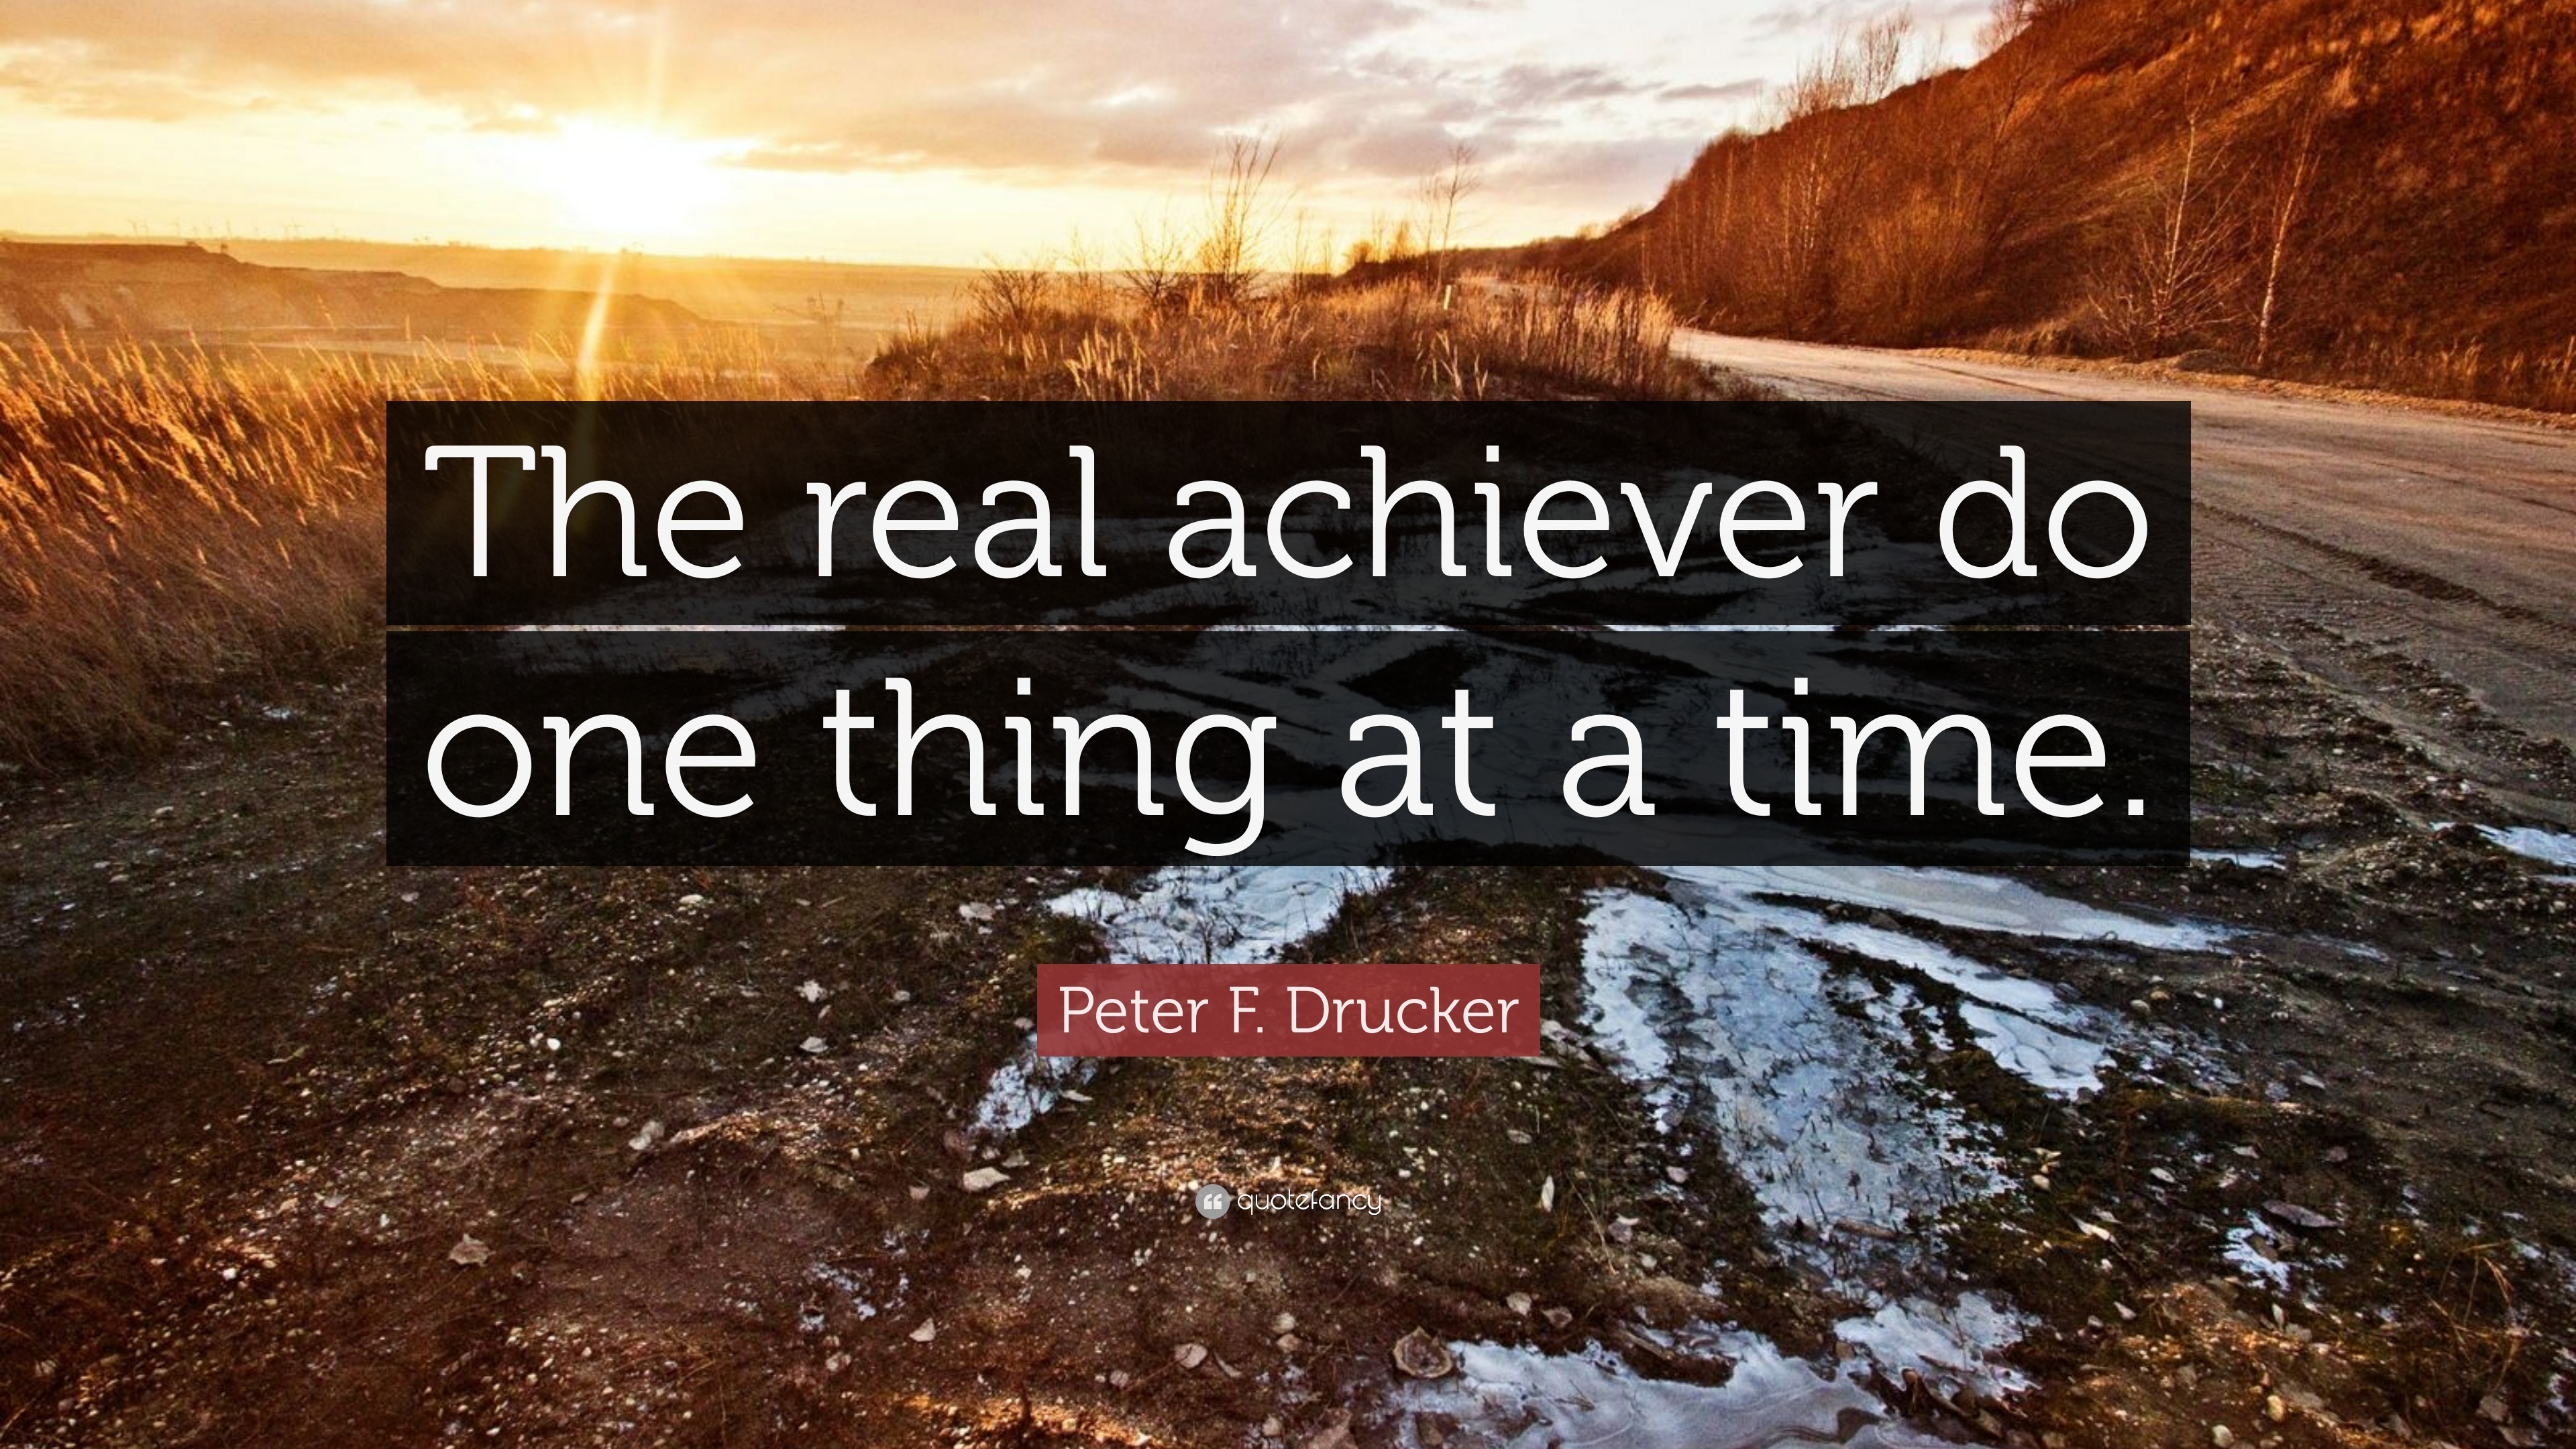 Peter F Drucker Quote The Real Achiever Do One Thing At A Time